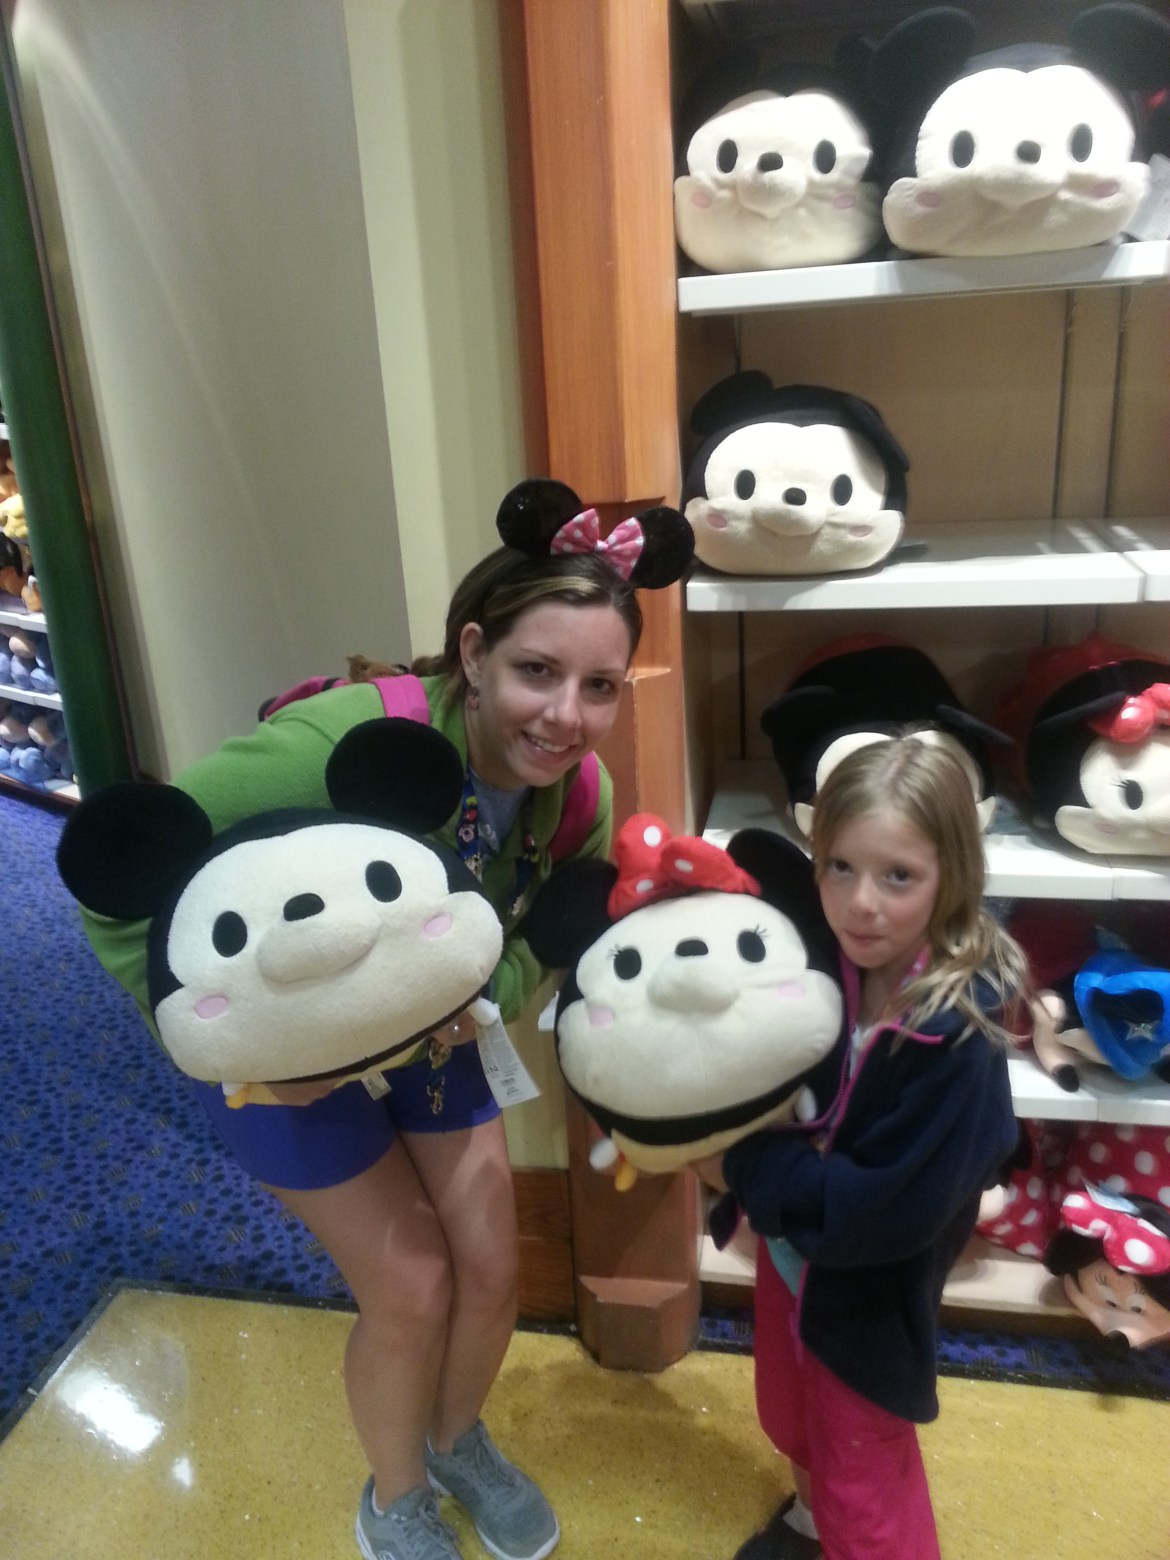 What are Tsum Tsums?